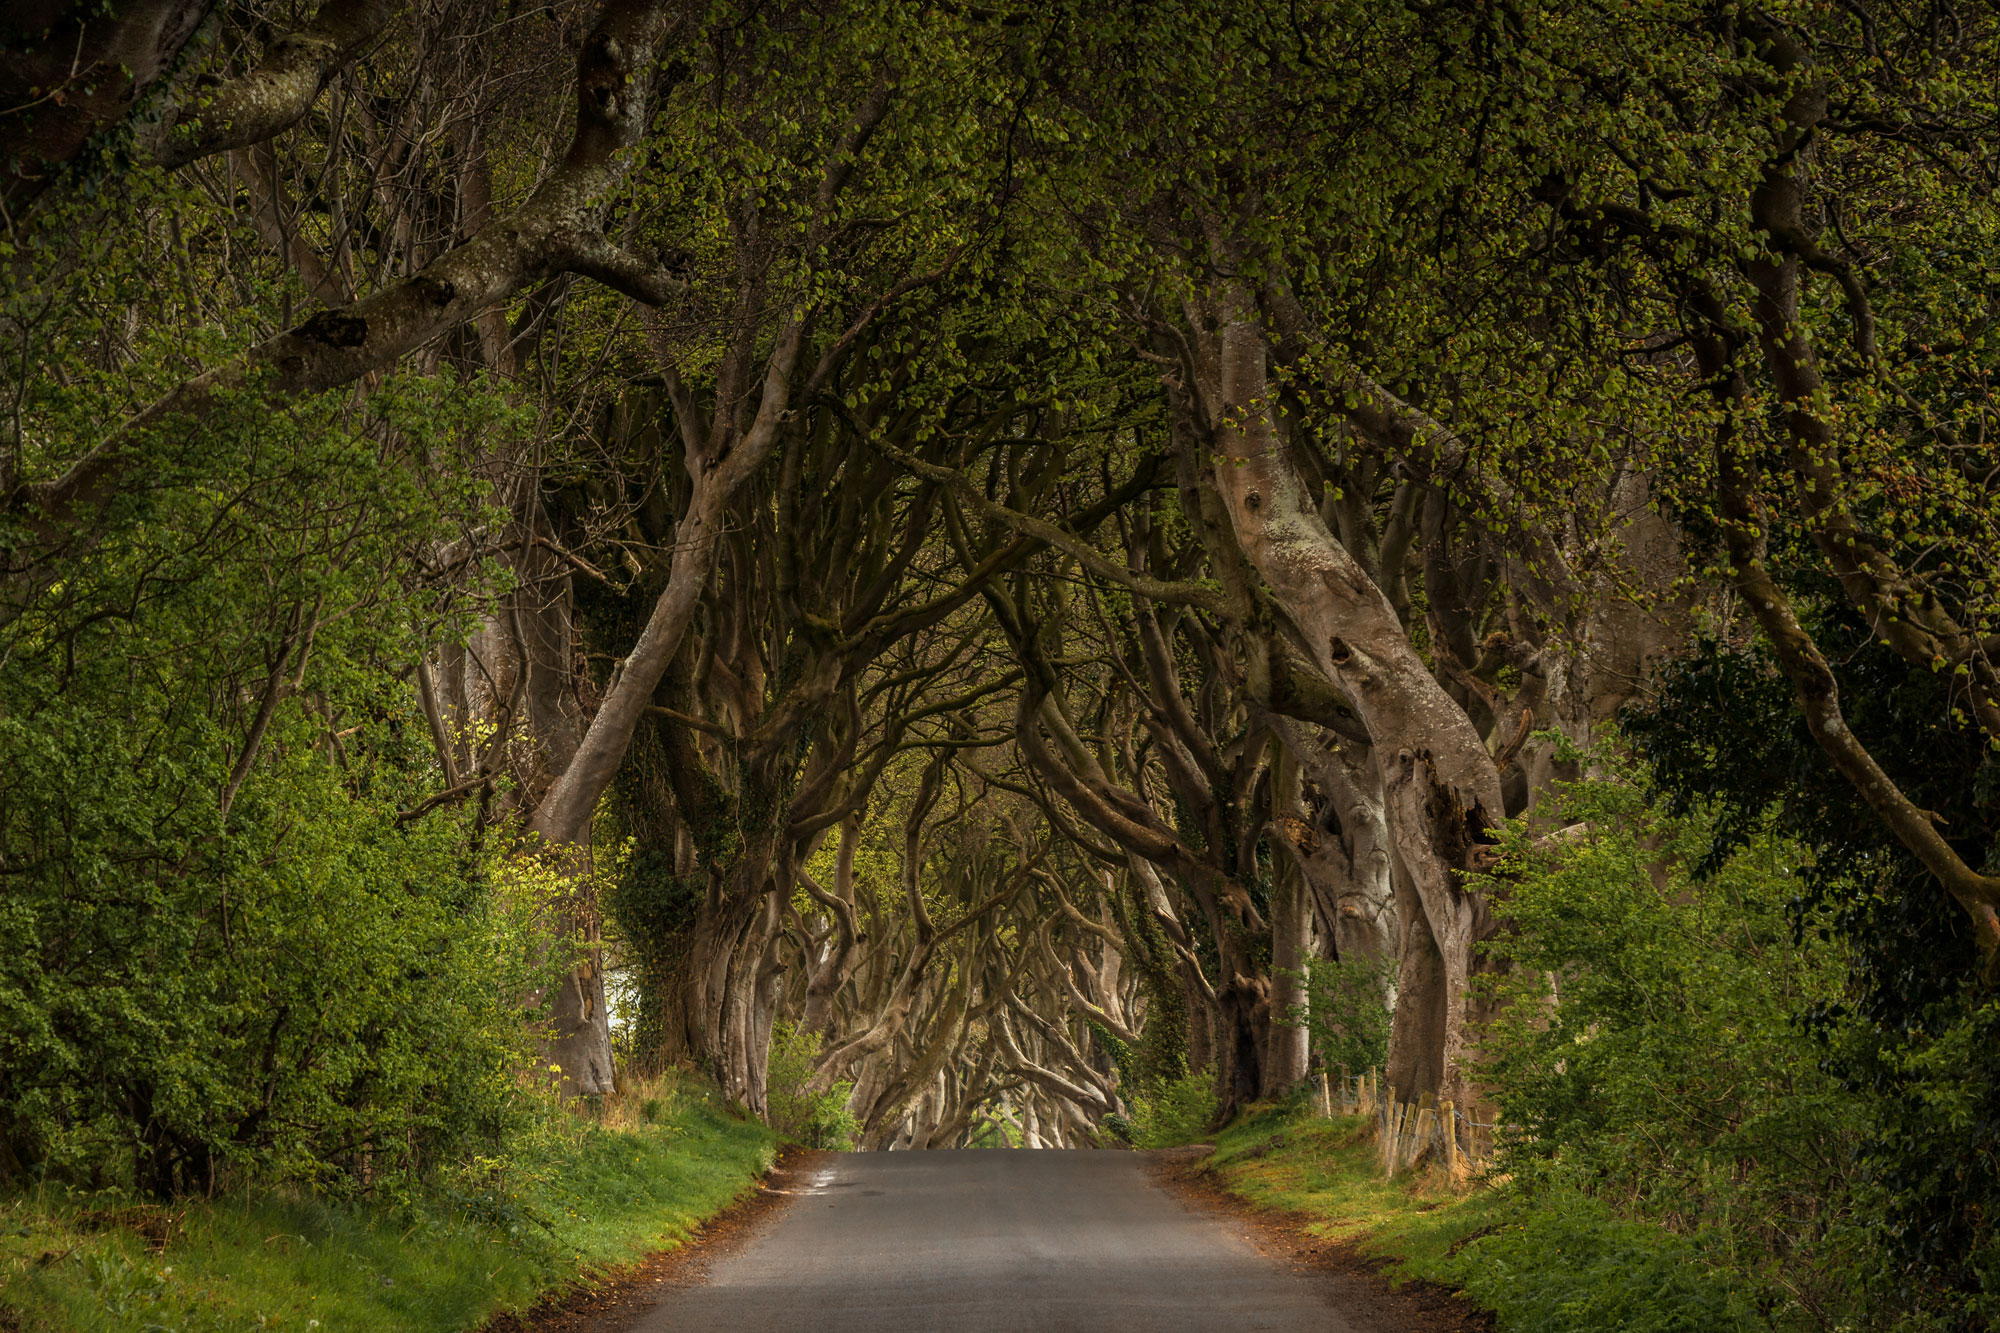 Dark Hedges, United Kingdom